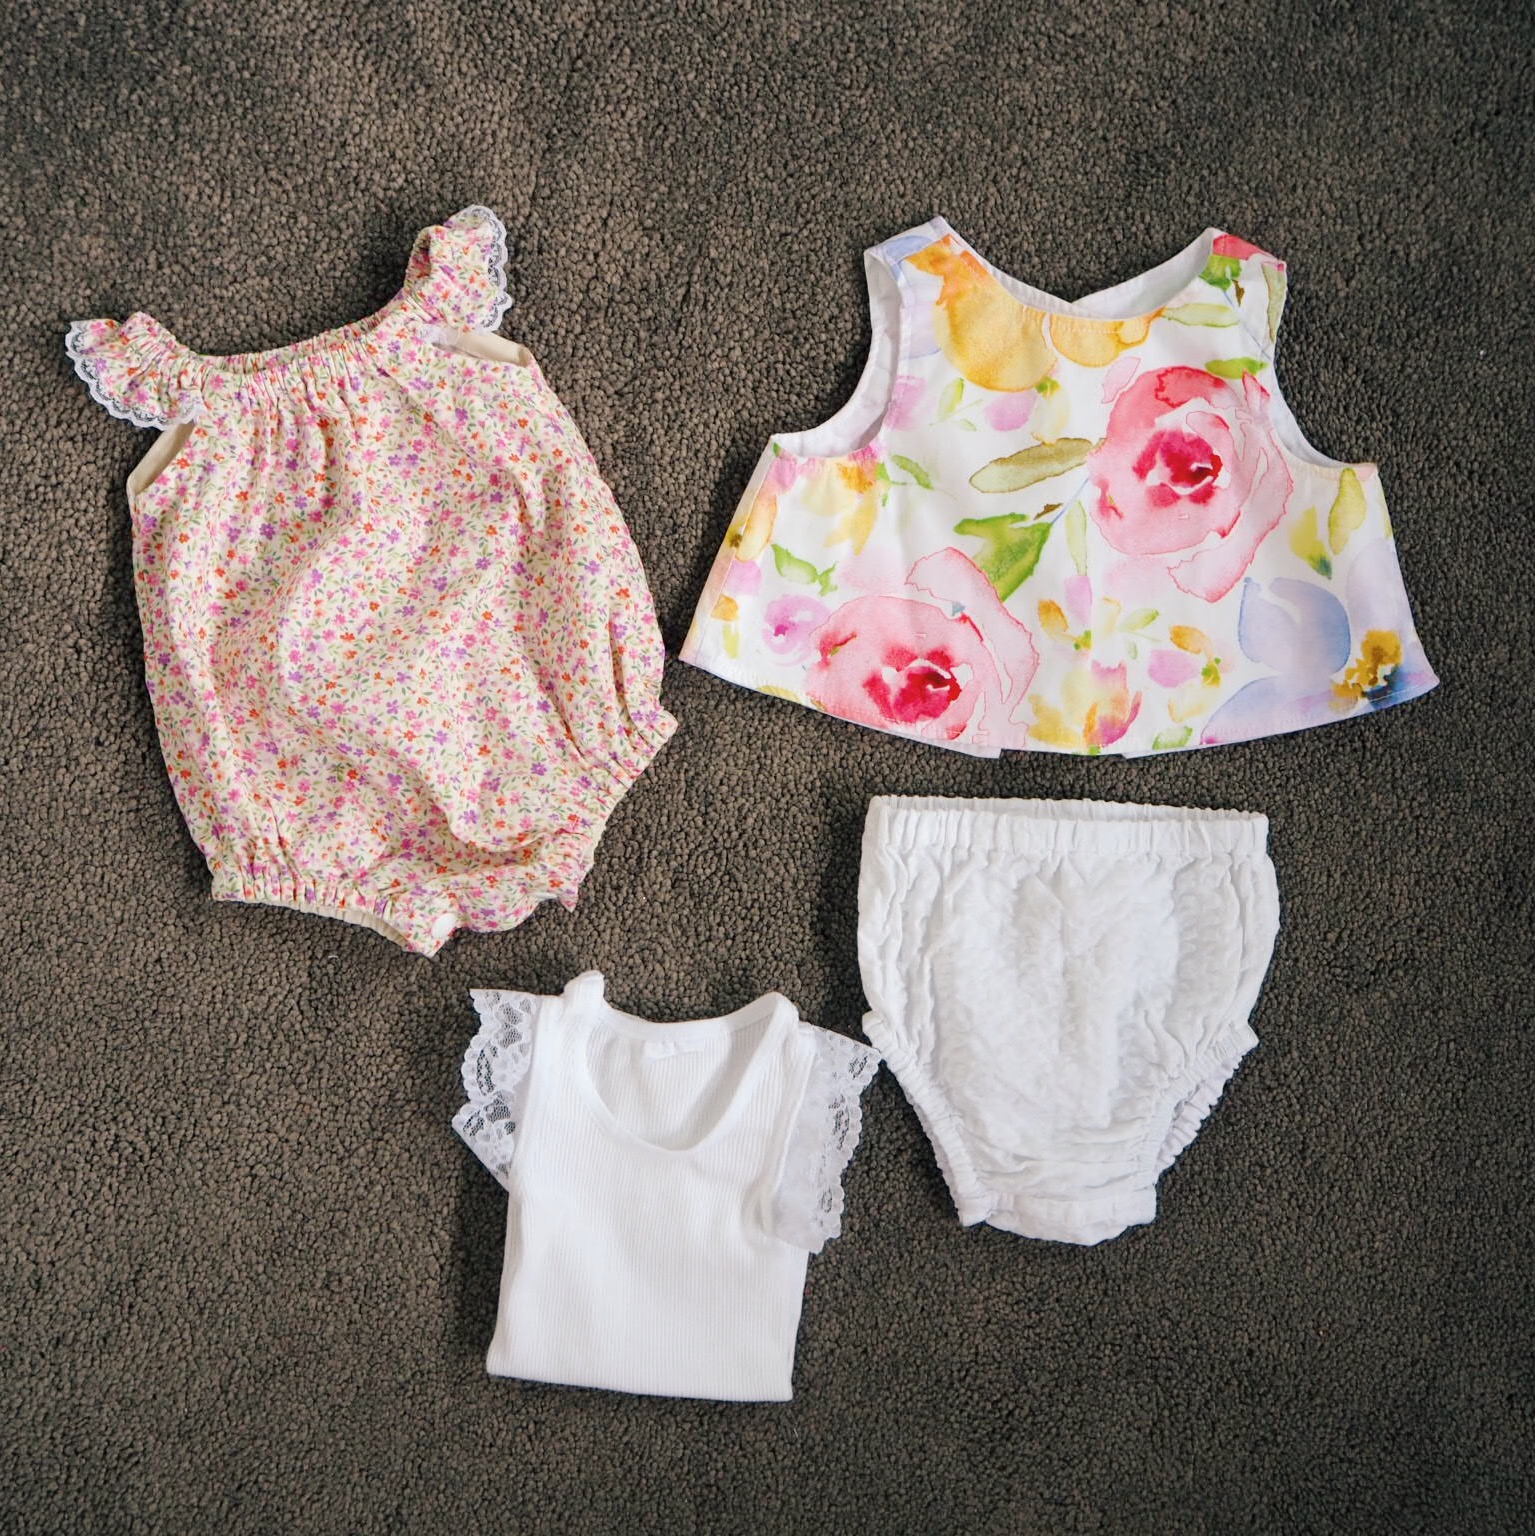 Cheap Baby Clothes Au Cute Baby Clothes Brands By Brittany Noonan Lifestyle Blog